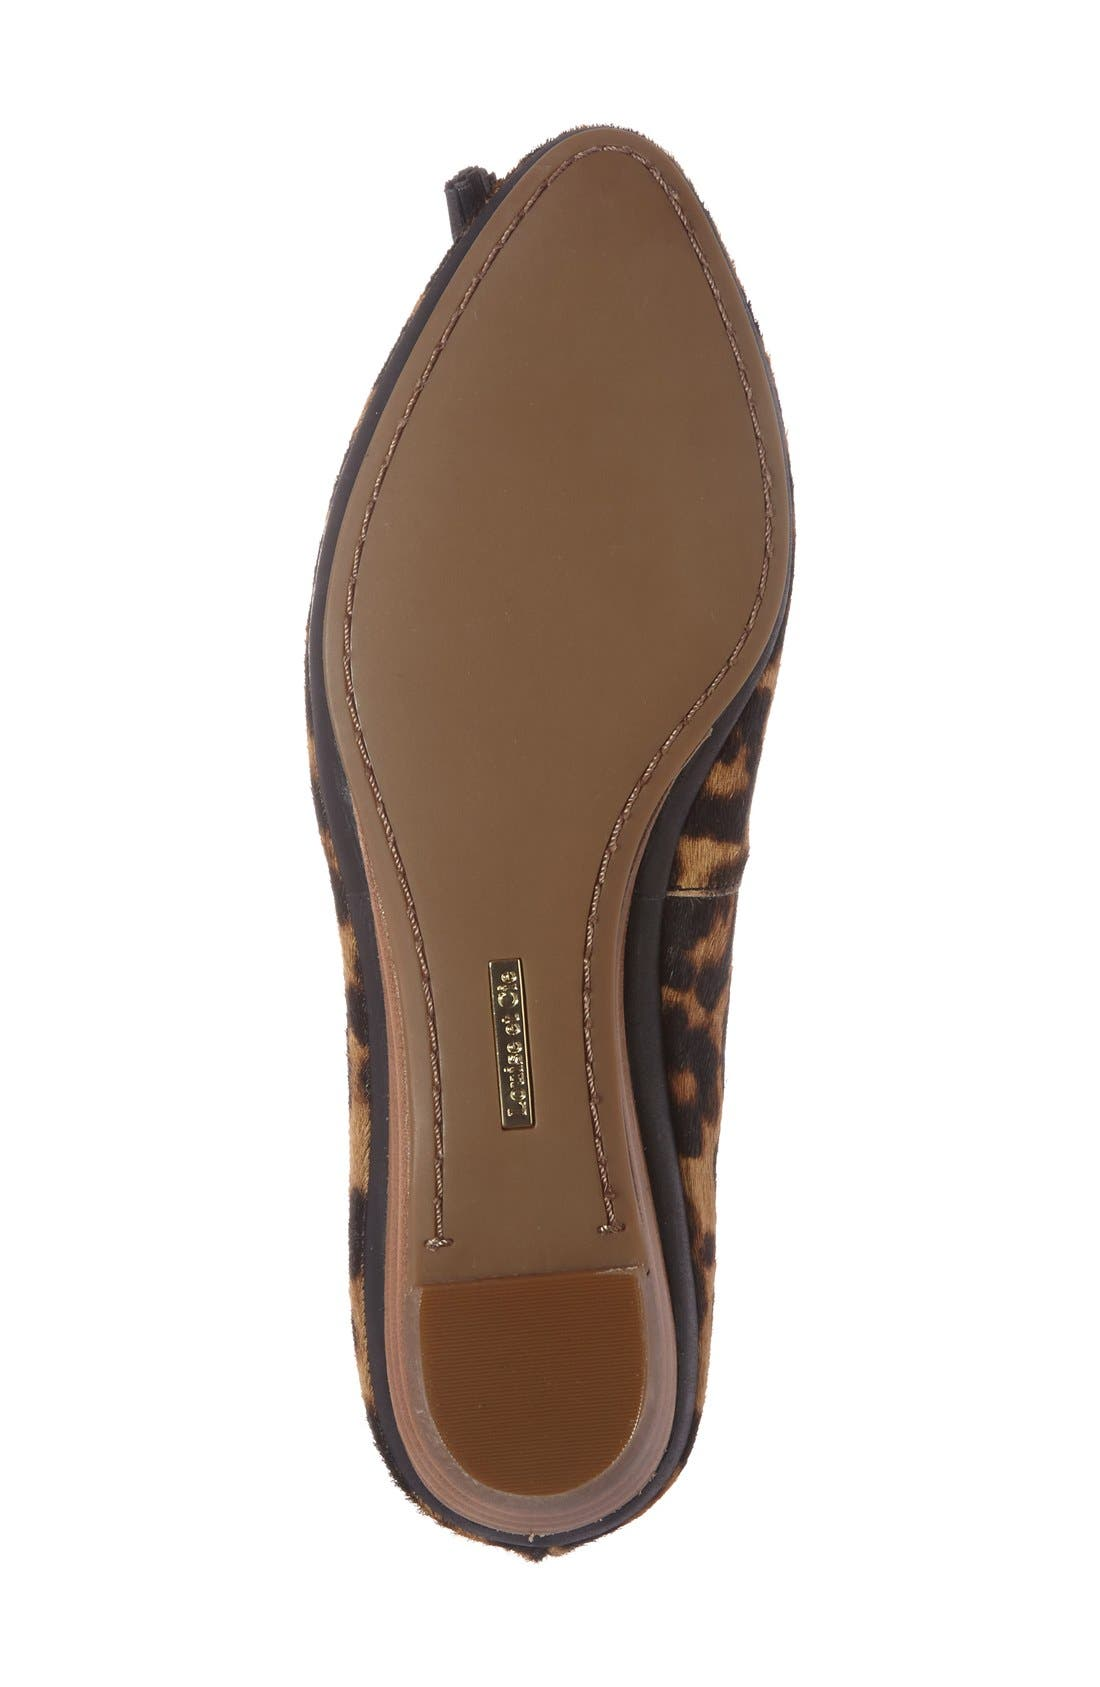 Alternate Image 4  - Louise et Cie 'Aradella' Genuine Calf Hair Pointy Toe Flat (Women) (Nordstrom Exclusive)